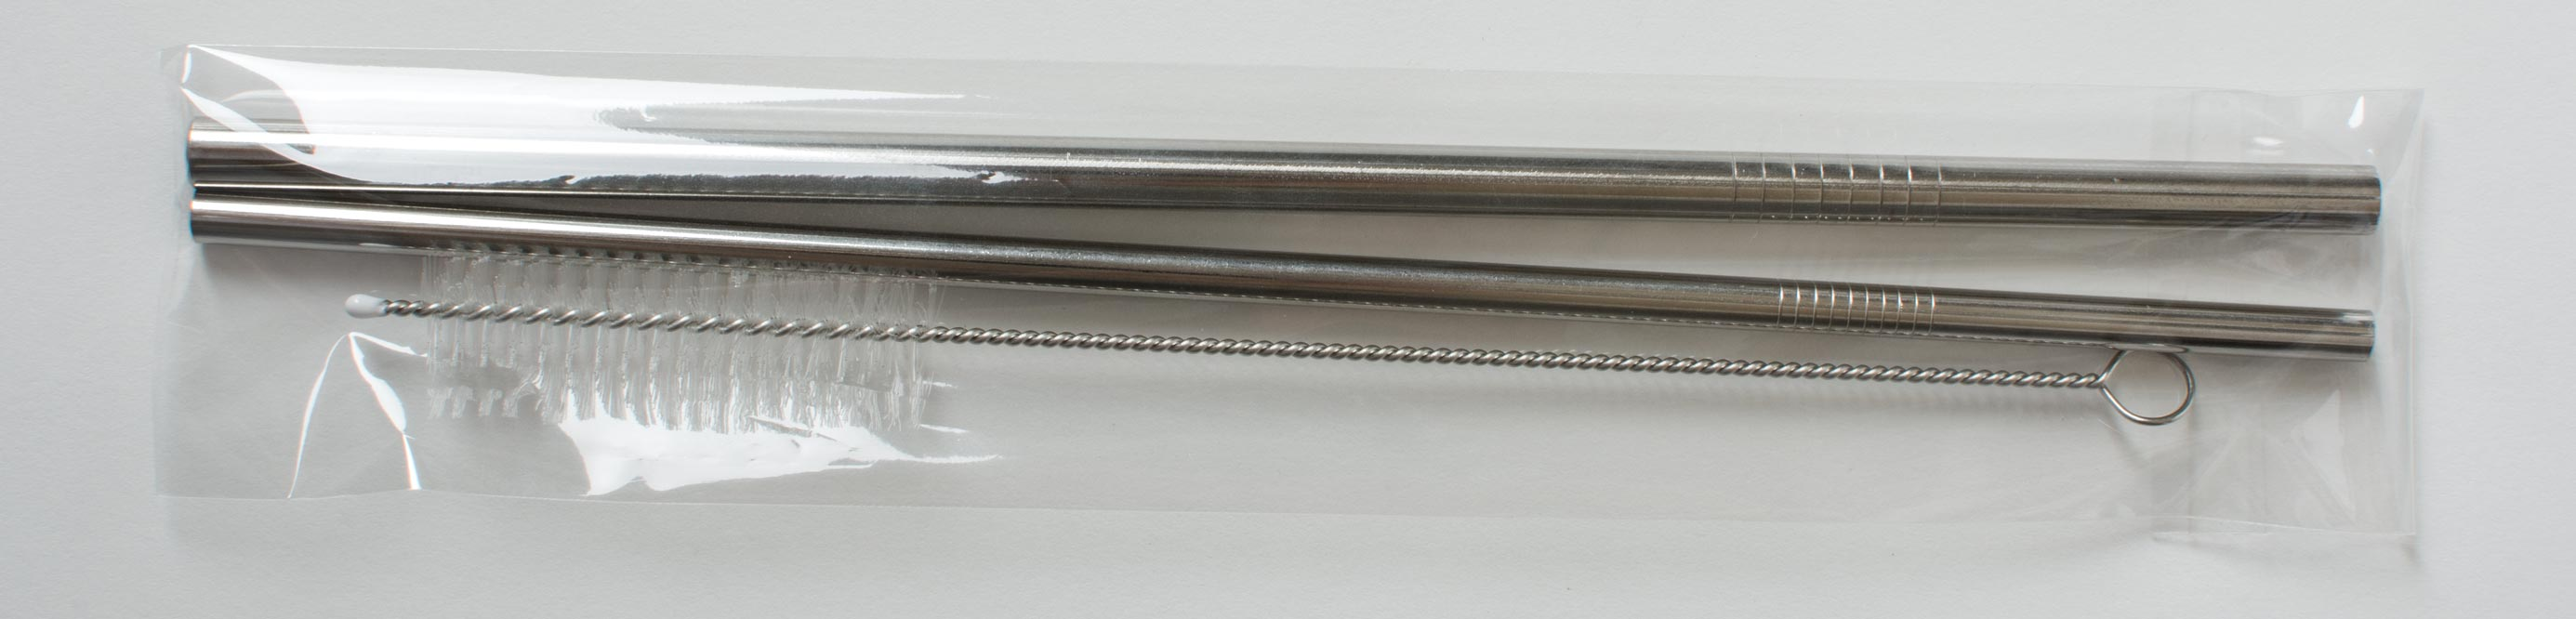 Resale Stainless Steel Drinking Straws